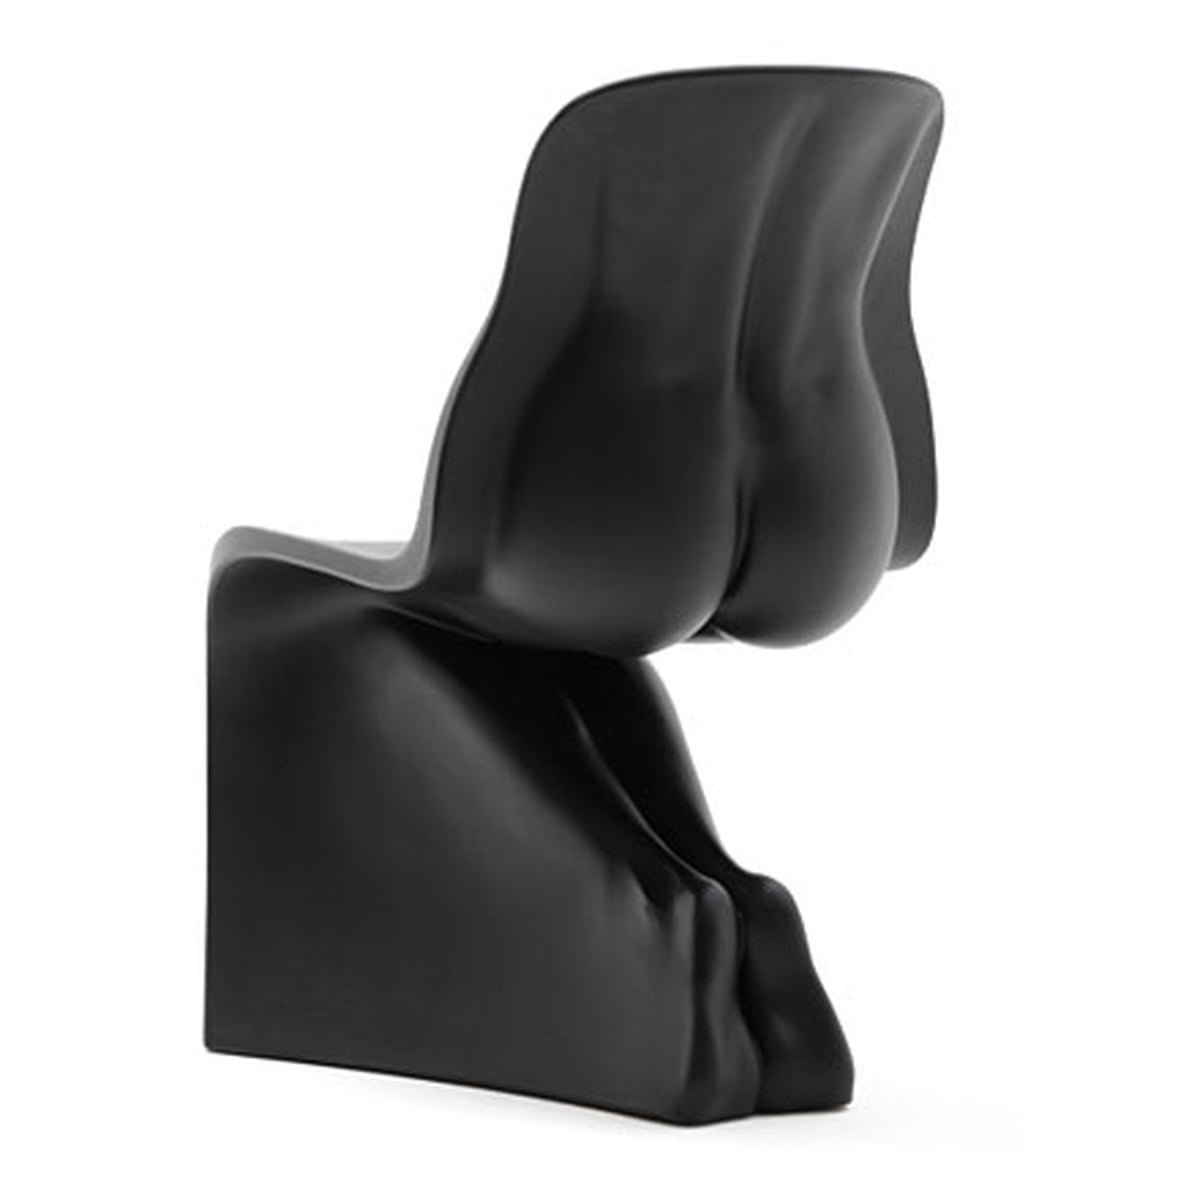 Him Amp Her Chair Casamania Connox Online Shop